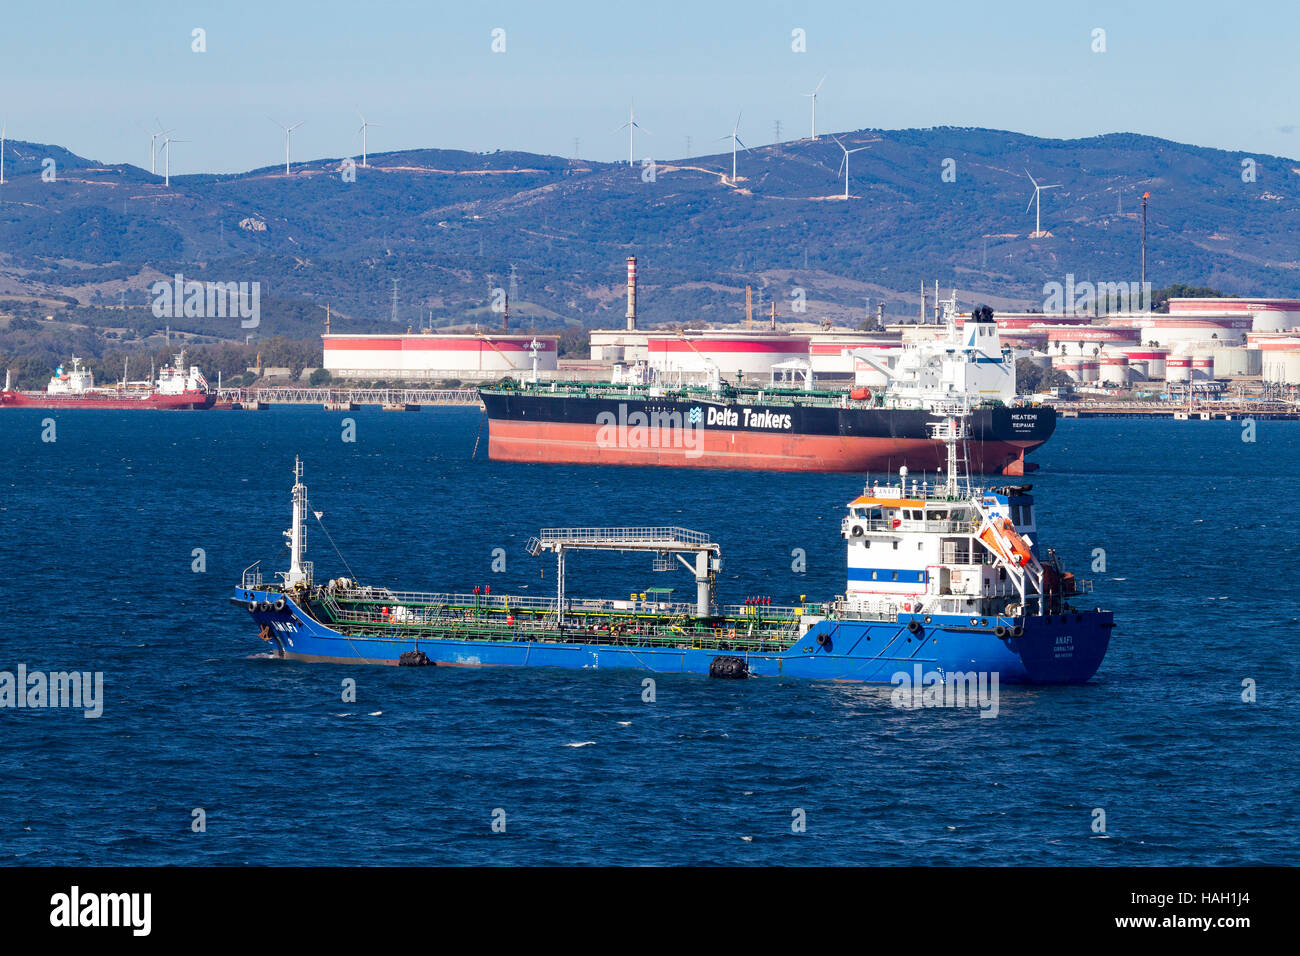 Gibunker 100, Oil, Products, Tanker,  and Meltemi Delta Tankers, Crude Oil carrierer off  San Roque  Refinery Stock Photo